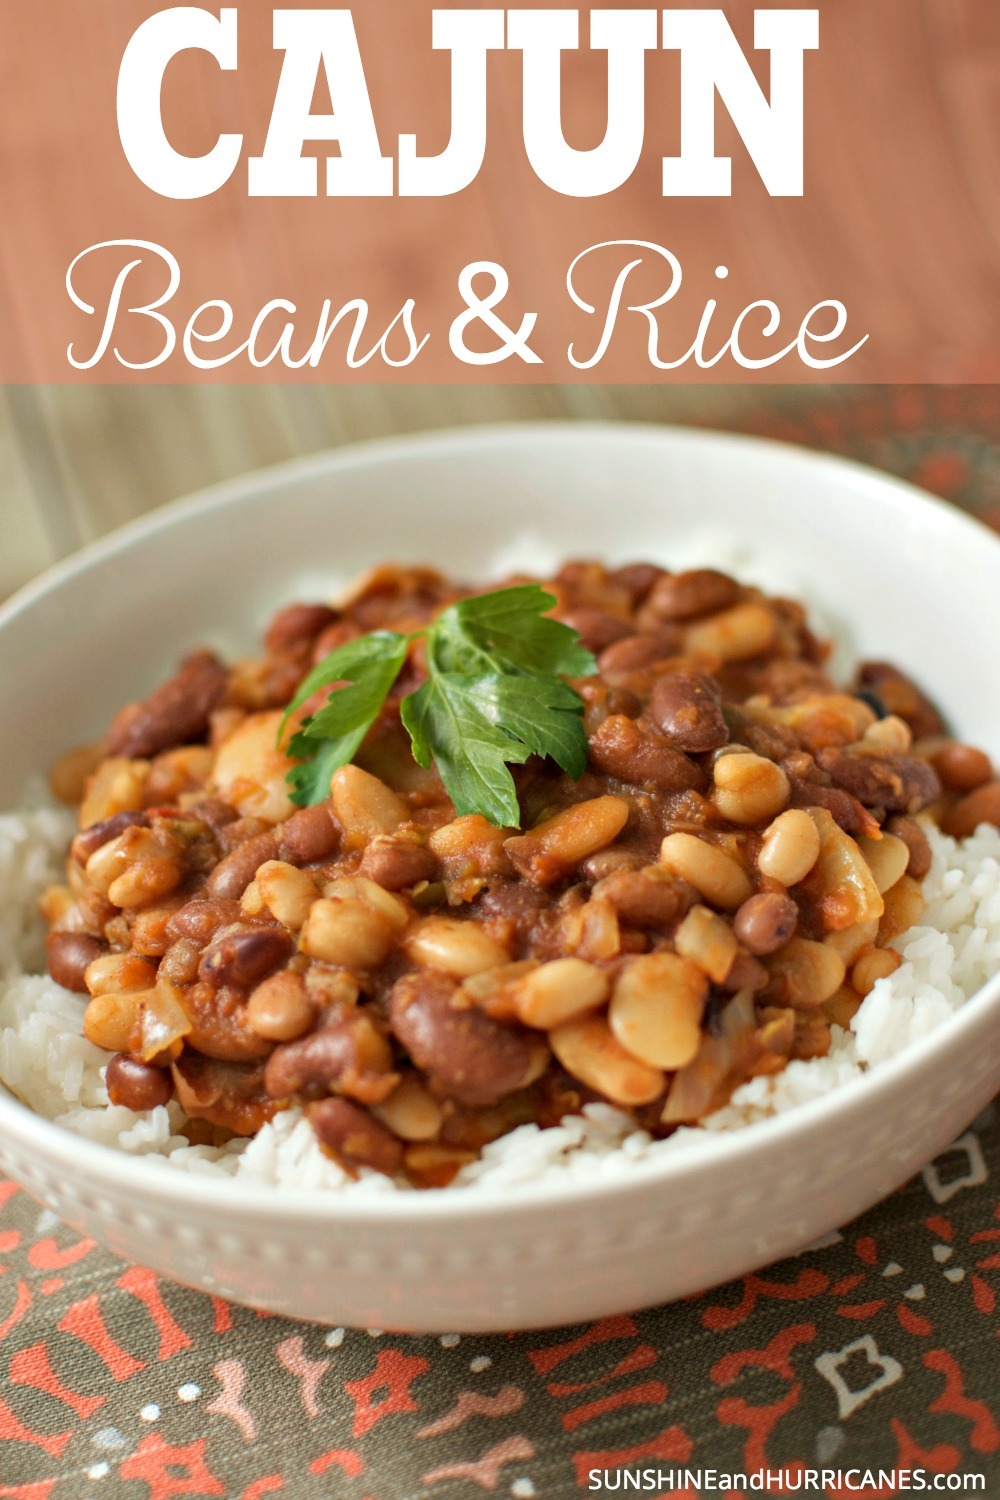 Looking for an easy rice and beans recipe with just a hint of spice? This dish is perfect for everything from a delicious family dinner to a potluck. It's a meal that can feed a crowd or just a few with leftovers to freeze. Cajun Rice and Beans Recipe from SunshineandHurricanes.com